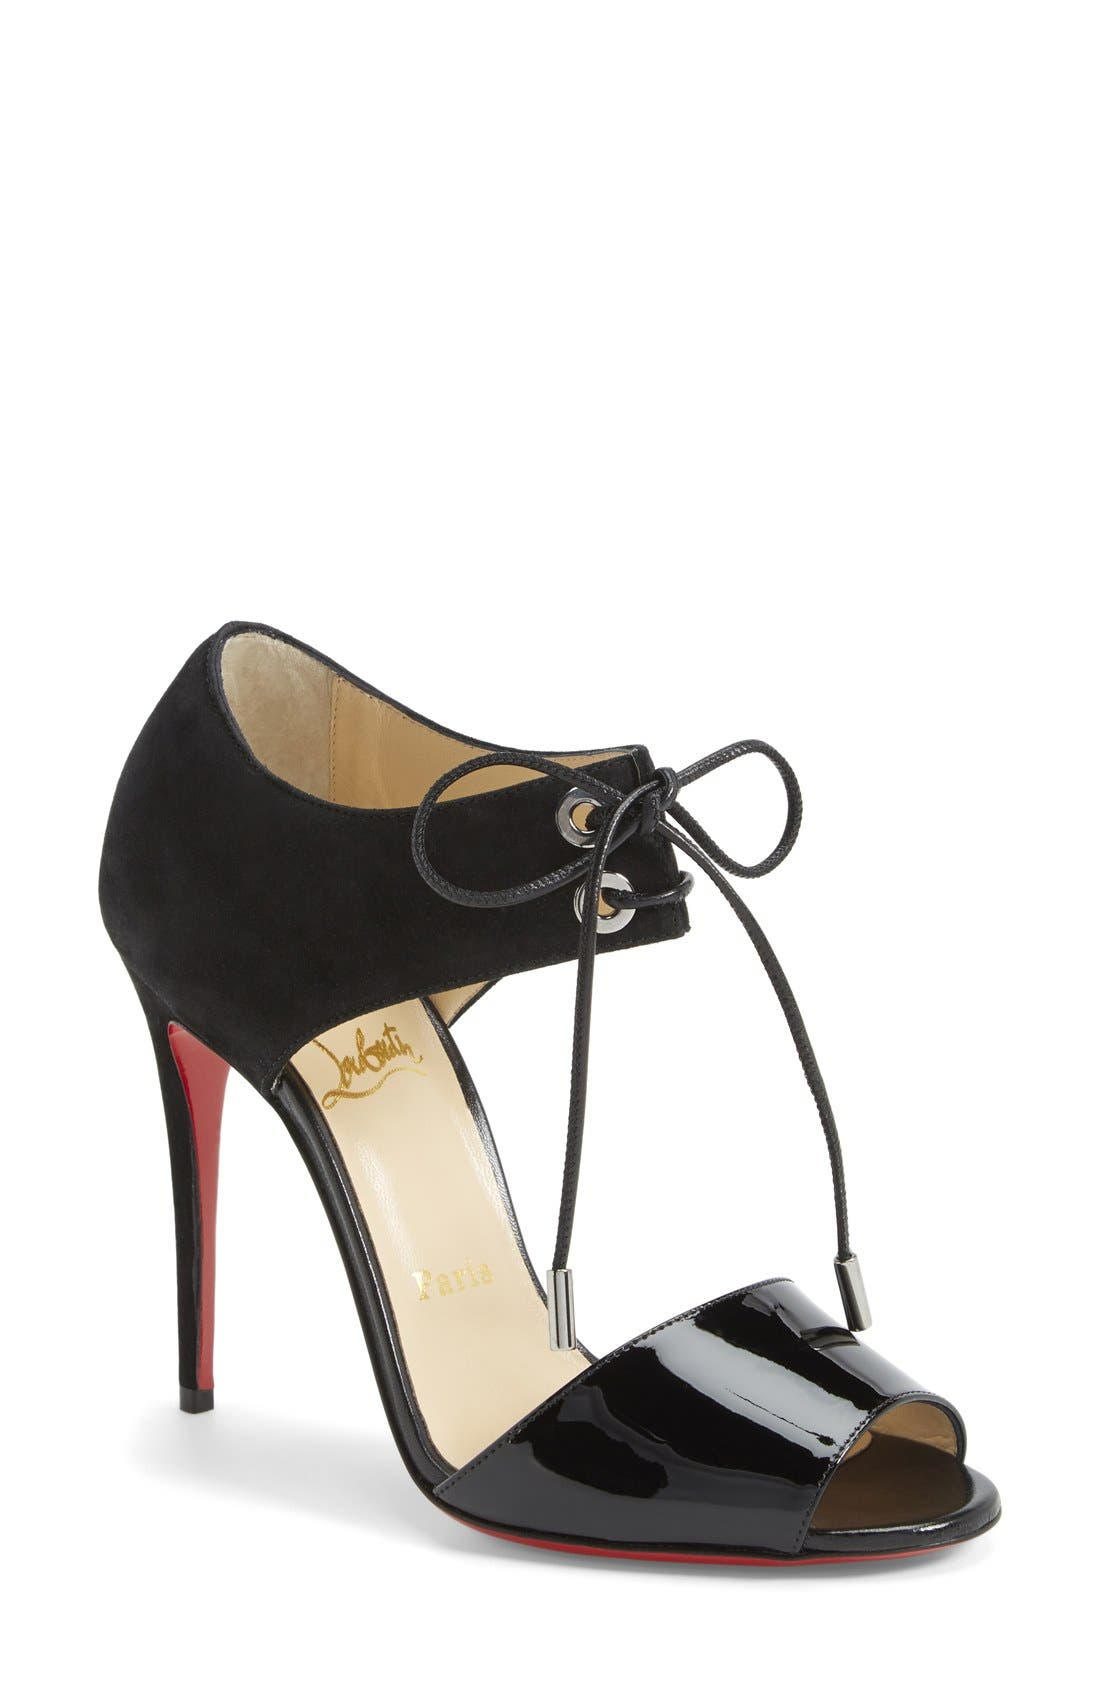 Alternate Image 1 Selected - Christian Louboutin Tie-Up Leather Sandal